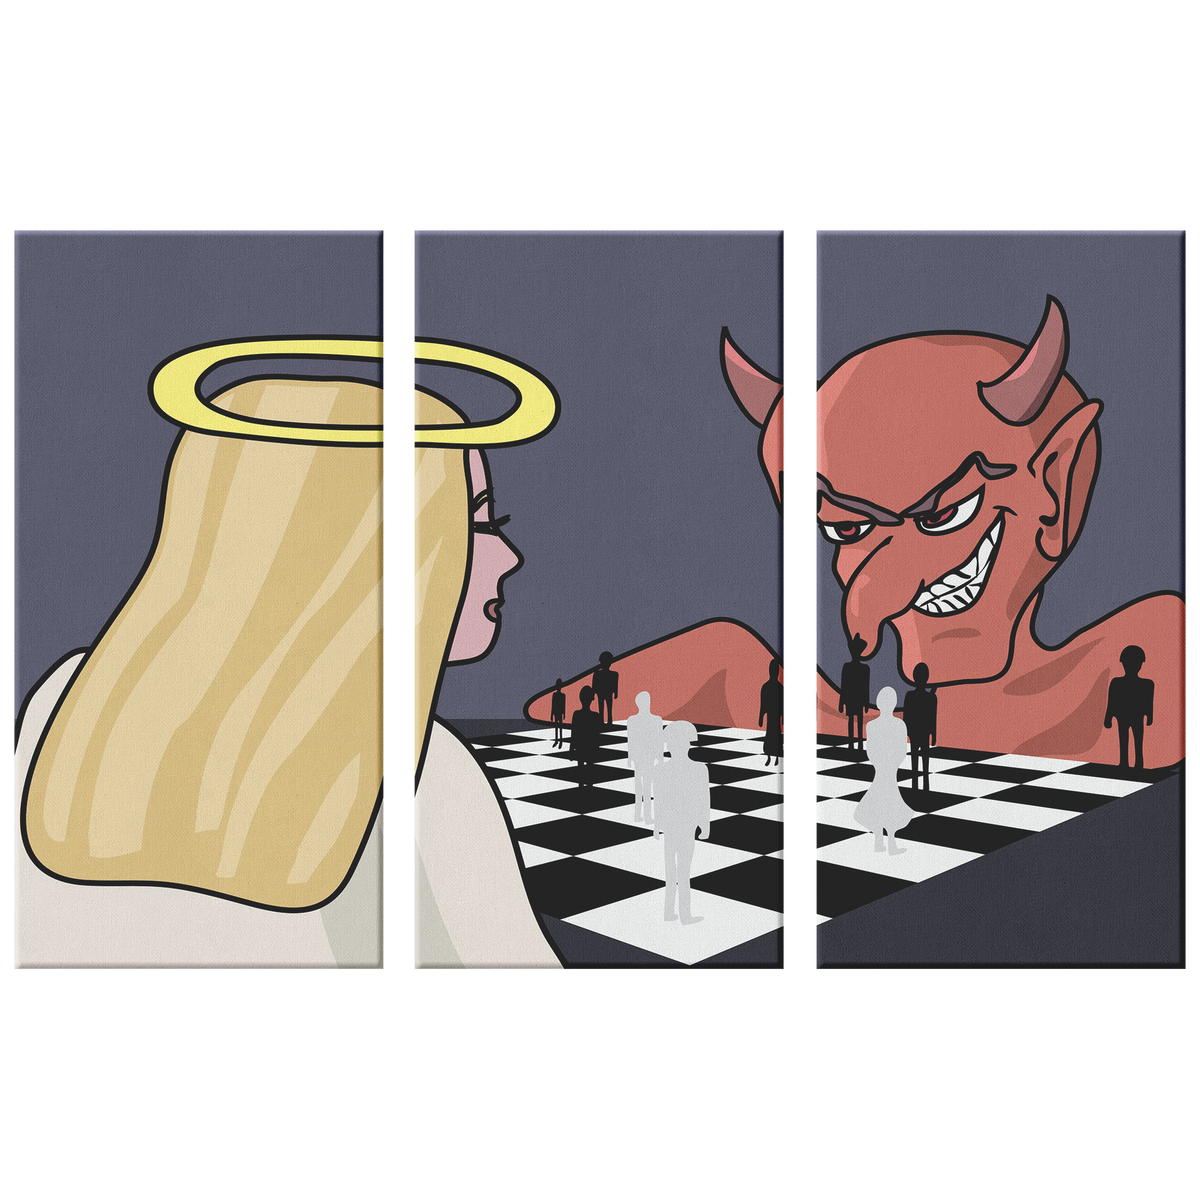 God vs Devil people chess - 3 piece canvas wall art